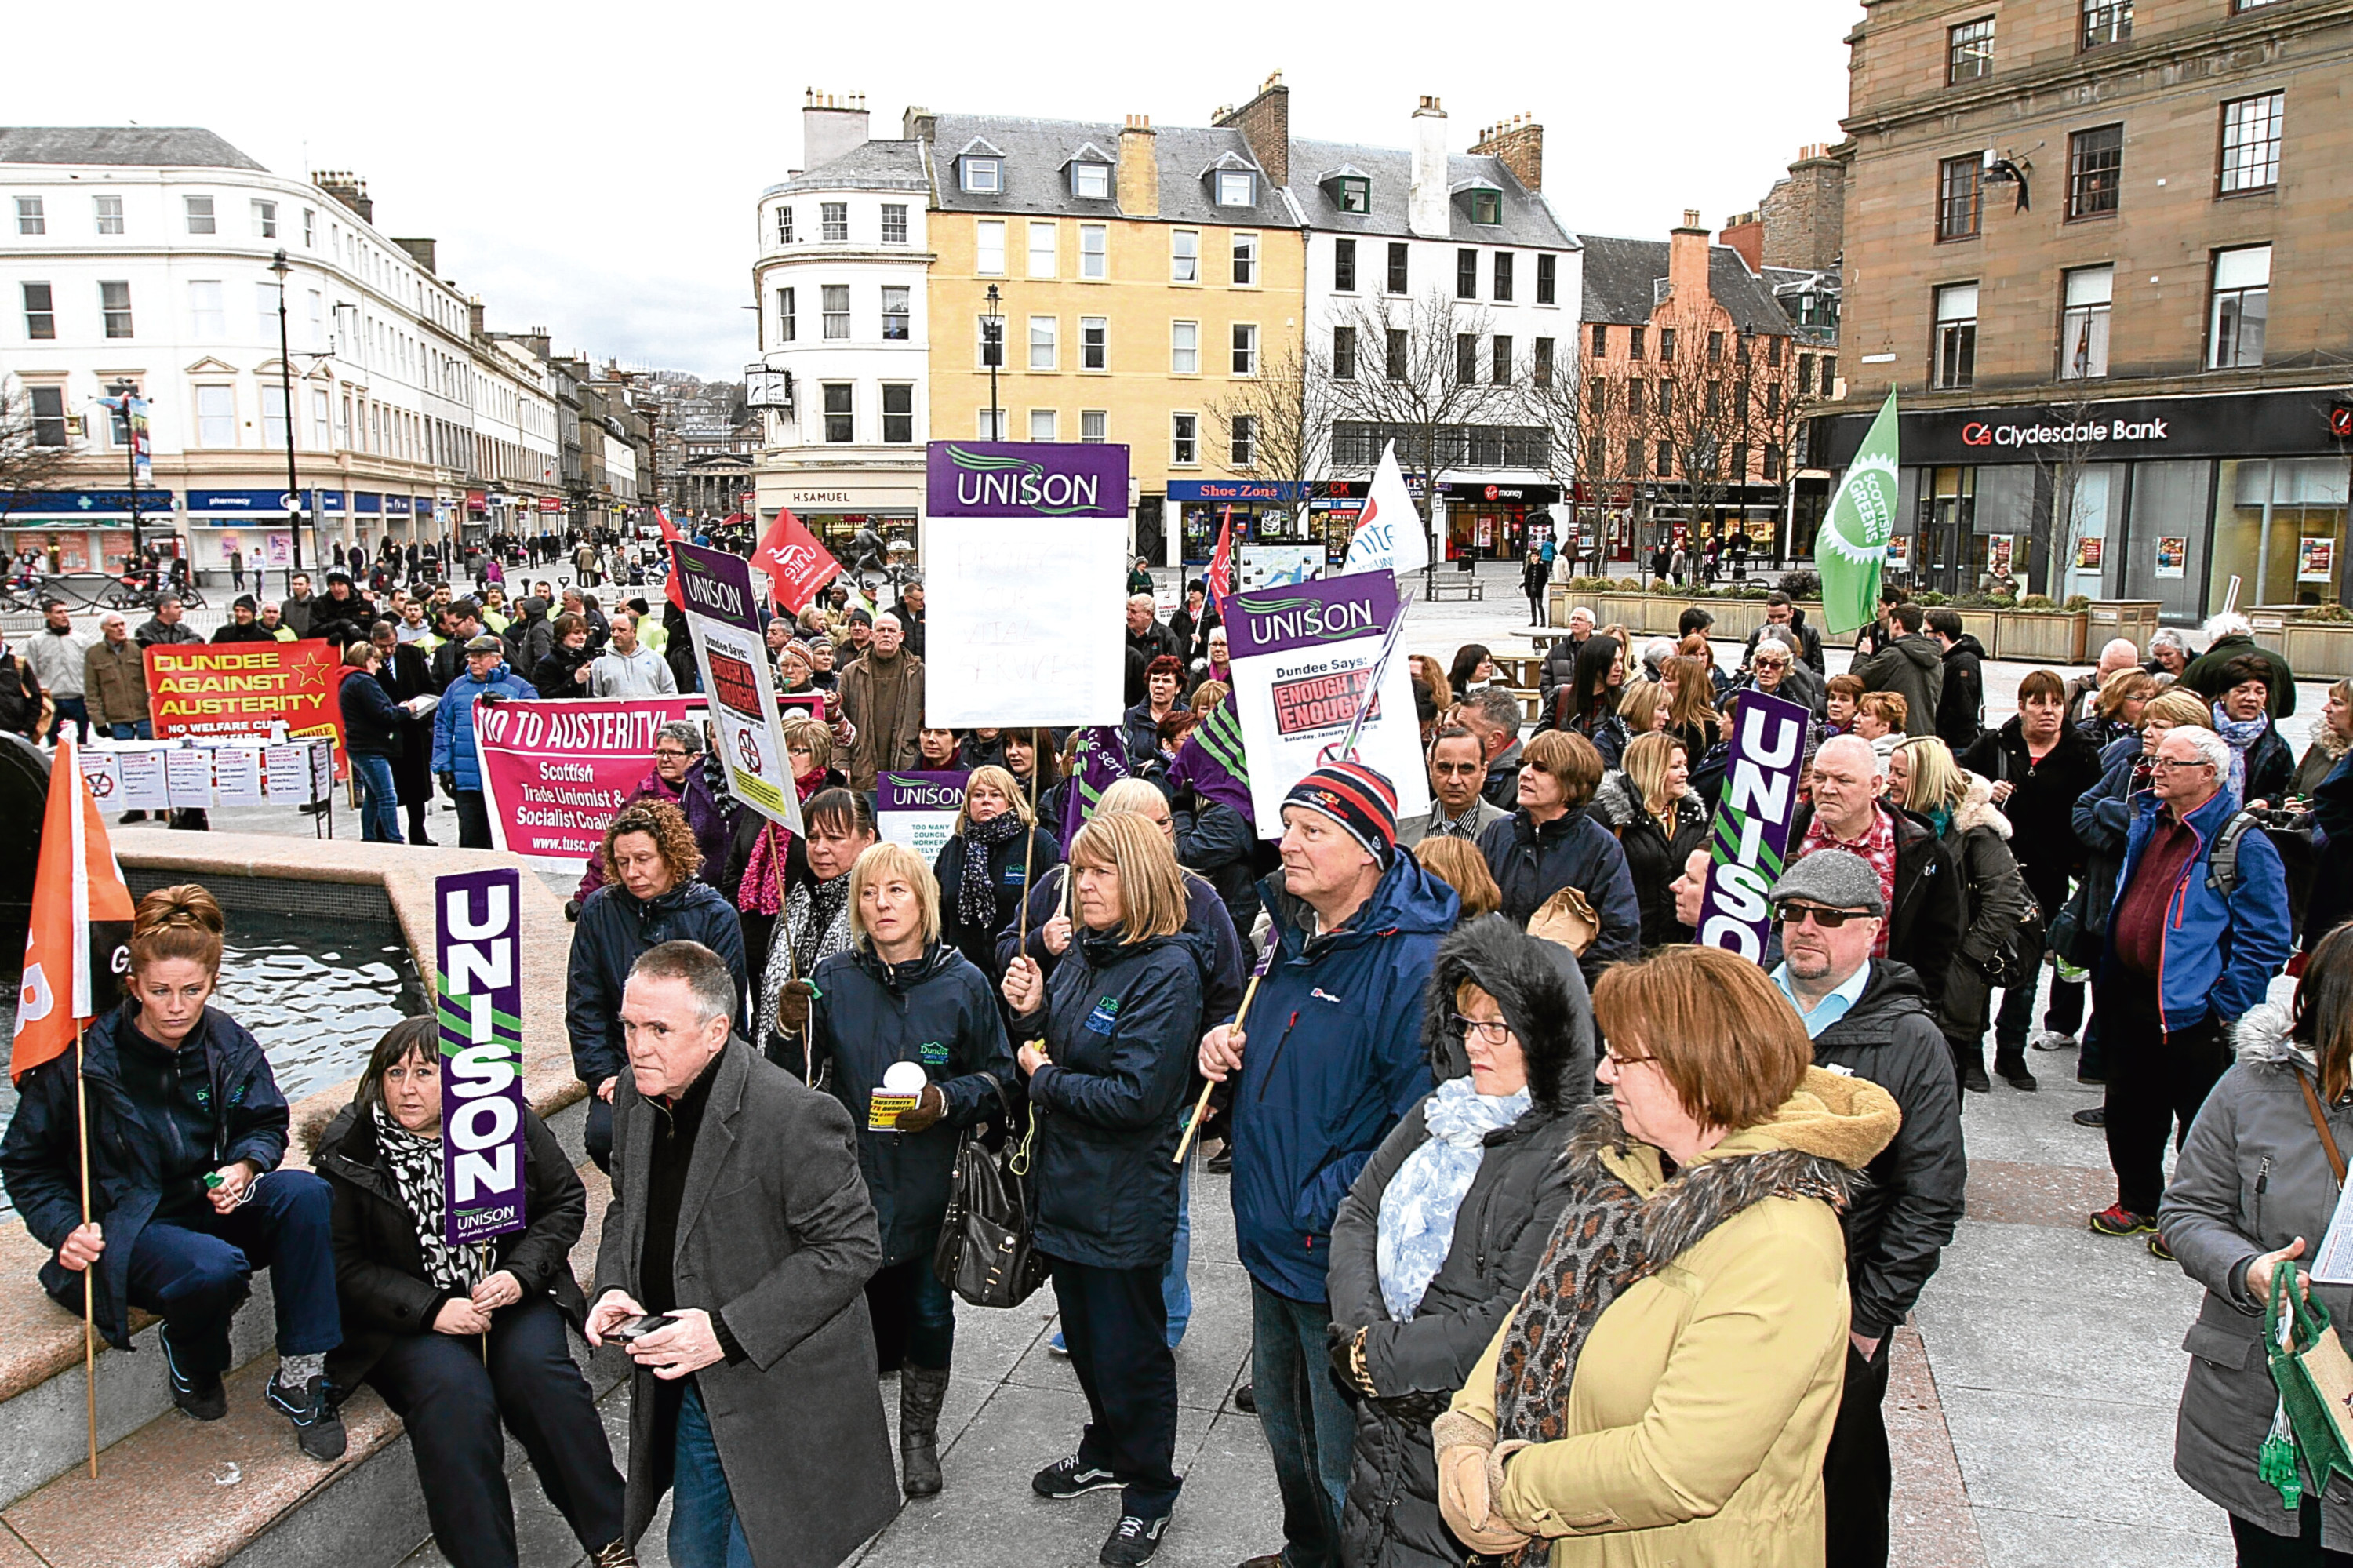 Crowds protested against the cut earlier this year